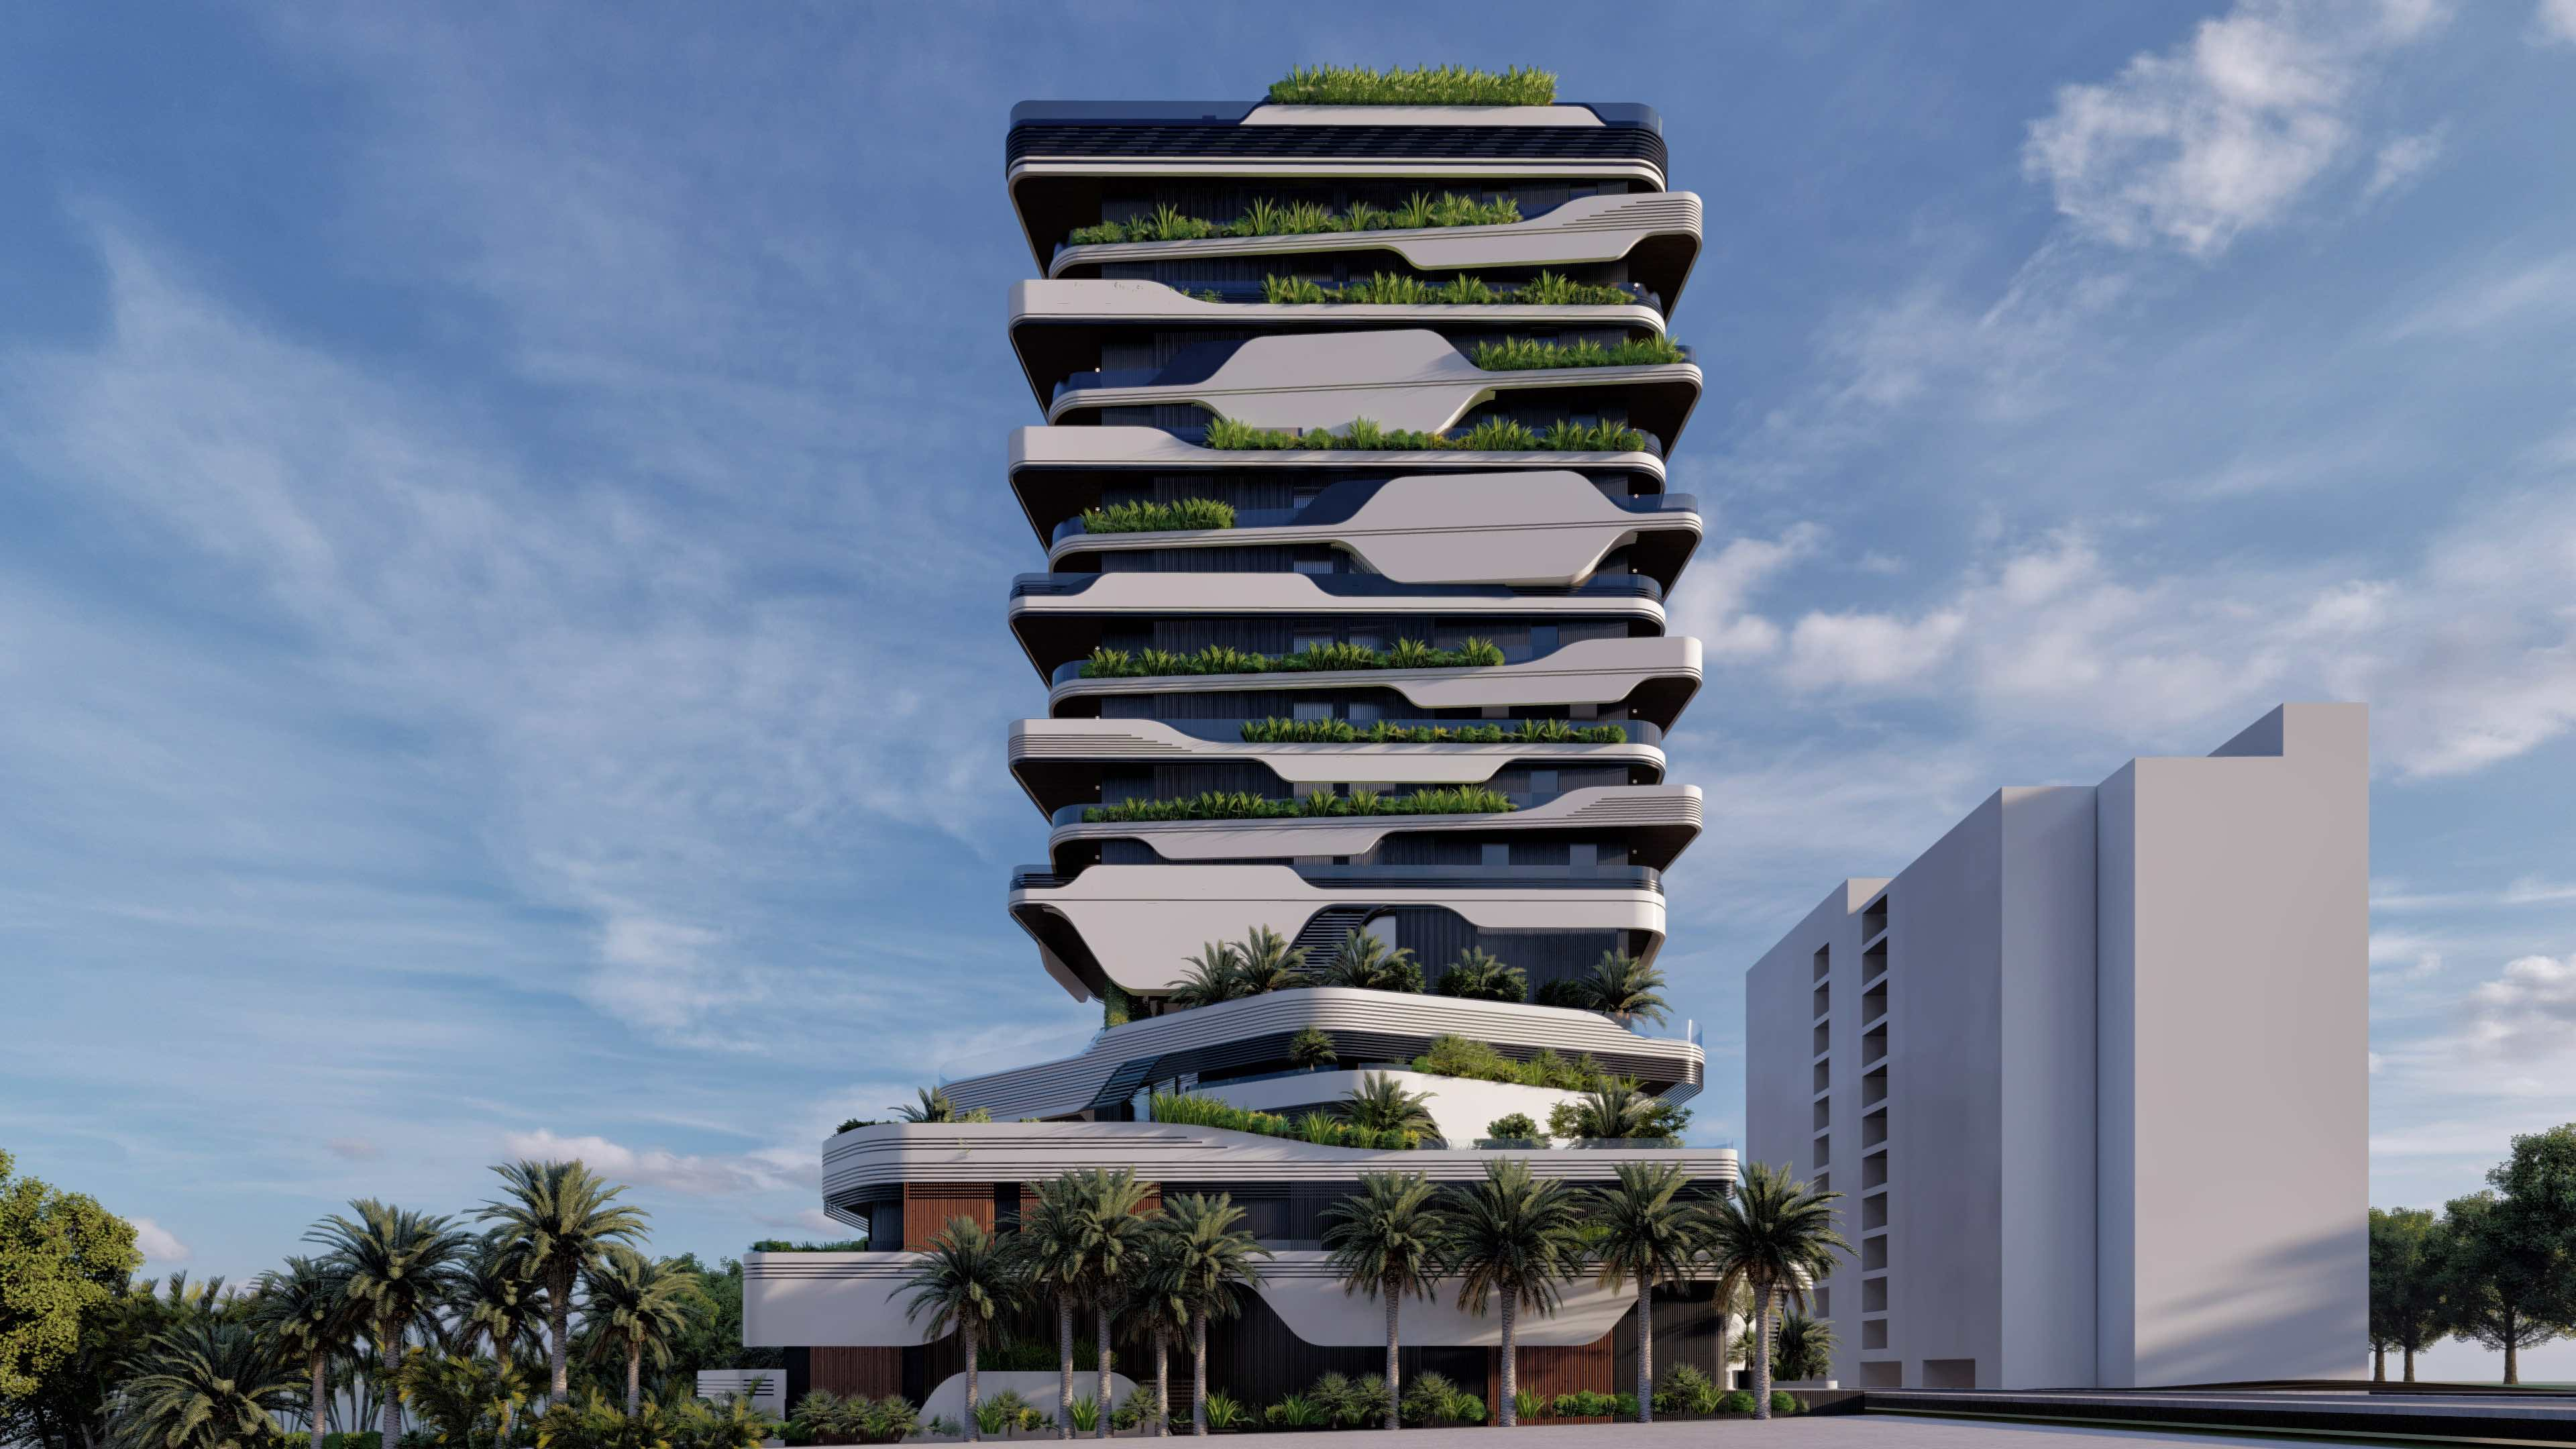 a modern hotel with layered balconies terraces